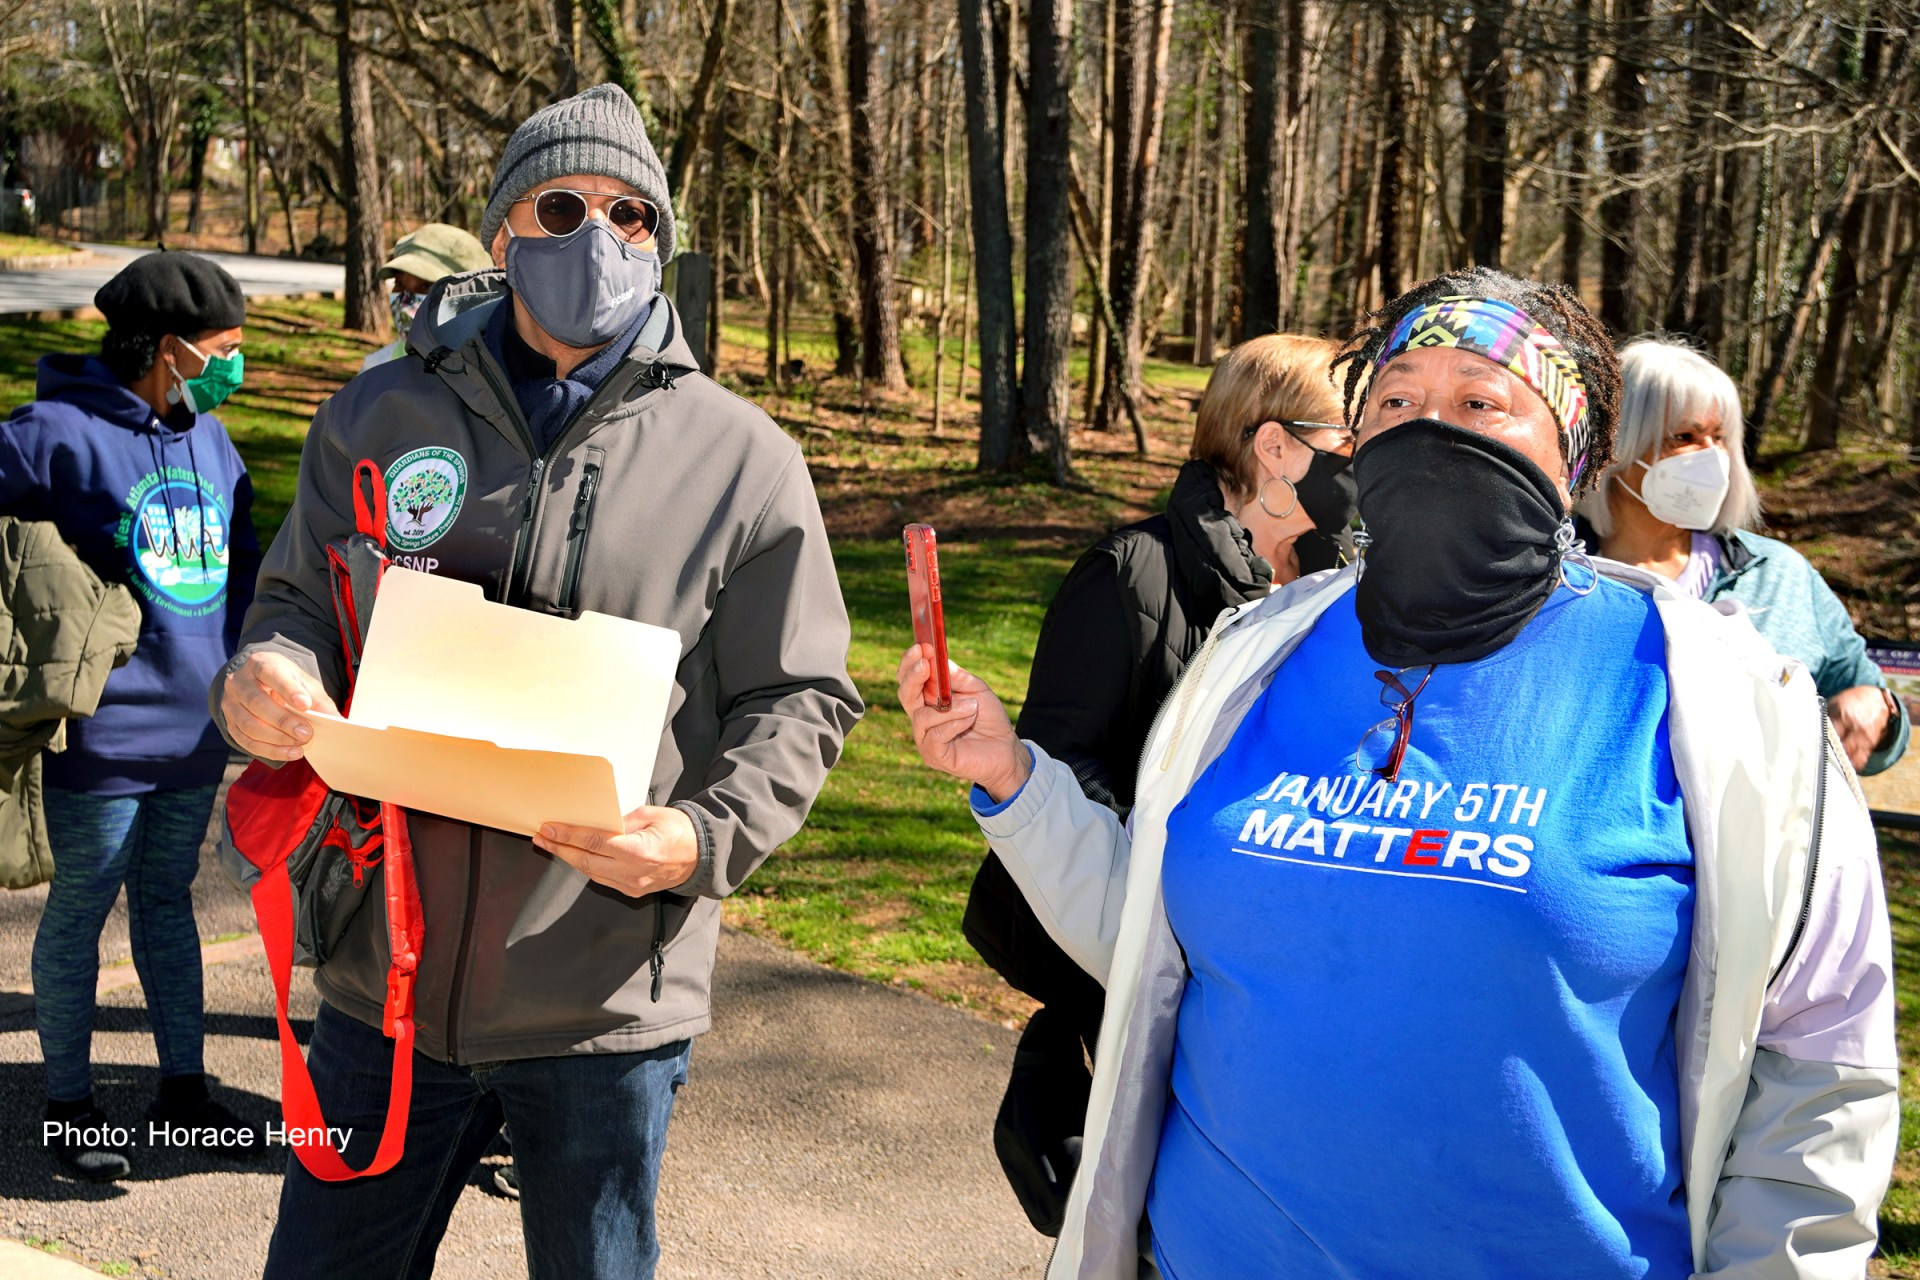 Mr. David Davis, of Friends of Cascade with community activist, Mrs. Cecilia Houston-Torrence, at Cascade Nature Preserve. Cecilia Houston-Torrence is also a member of Atlanta's Nature Gurlz, a group of women who promote voting and voter education and safely gather outdoors to fellowship and walk for fitness at Cascade Nature Preserve. Photo by Horace Henry